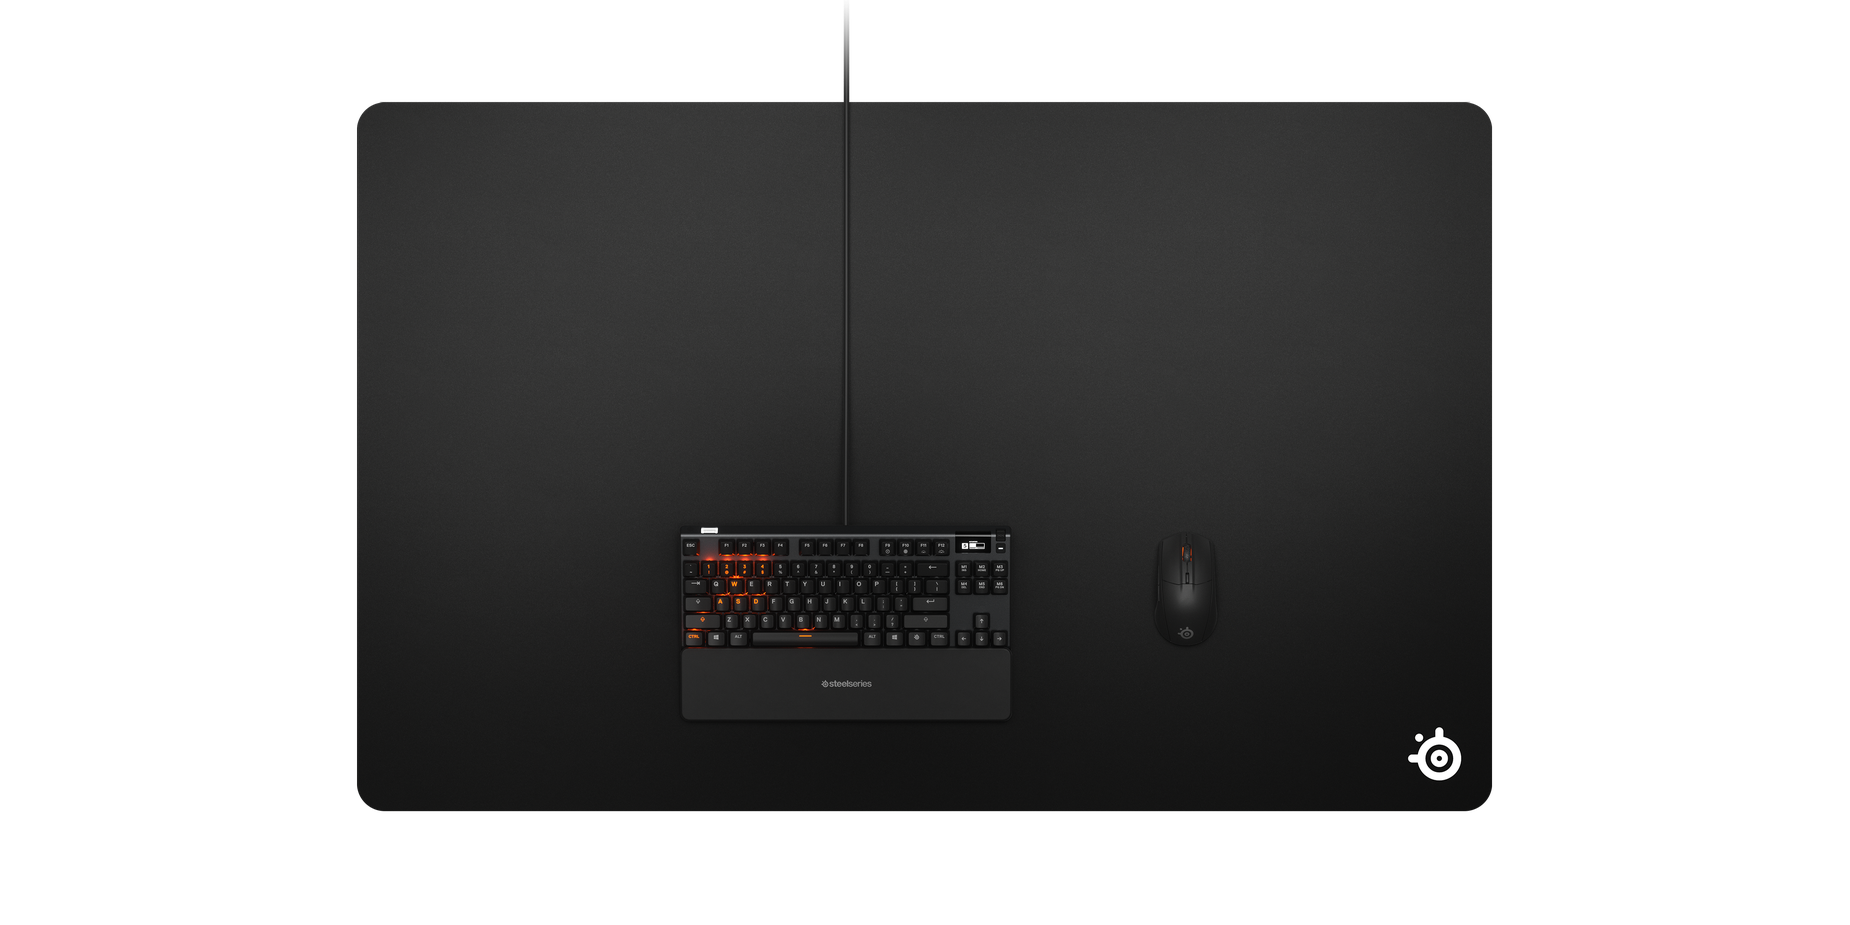 A birds eye view of the mousepad showing the dimensions